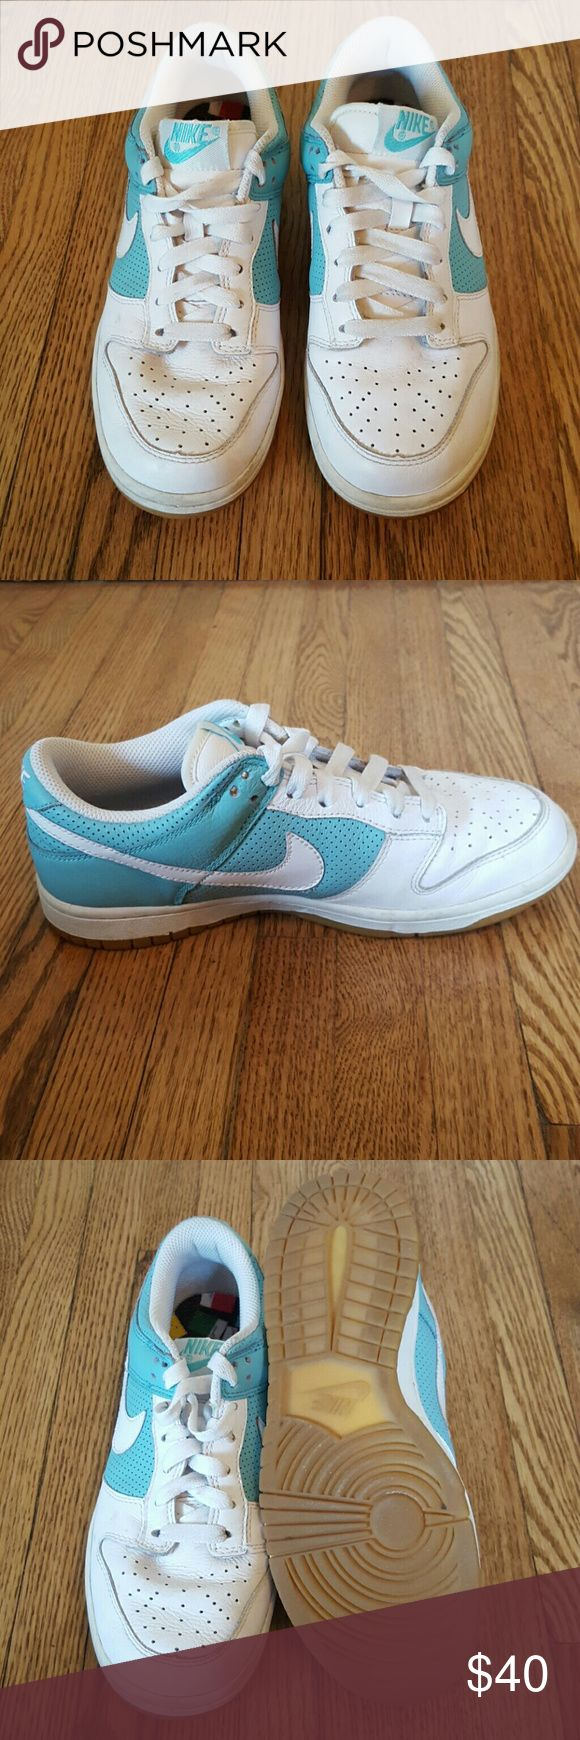 NIKE Air Force Ones White and teal Air Force Ones in great condition. Nike Shoes Sneakers